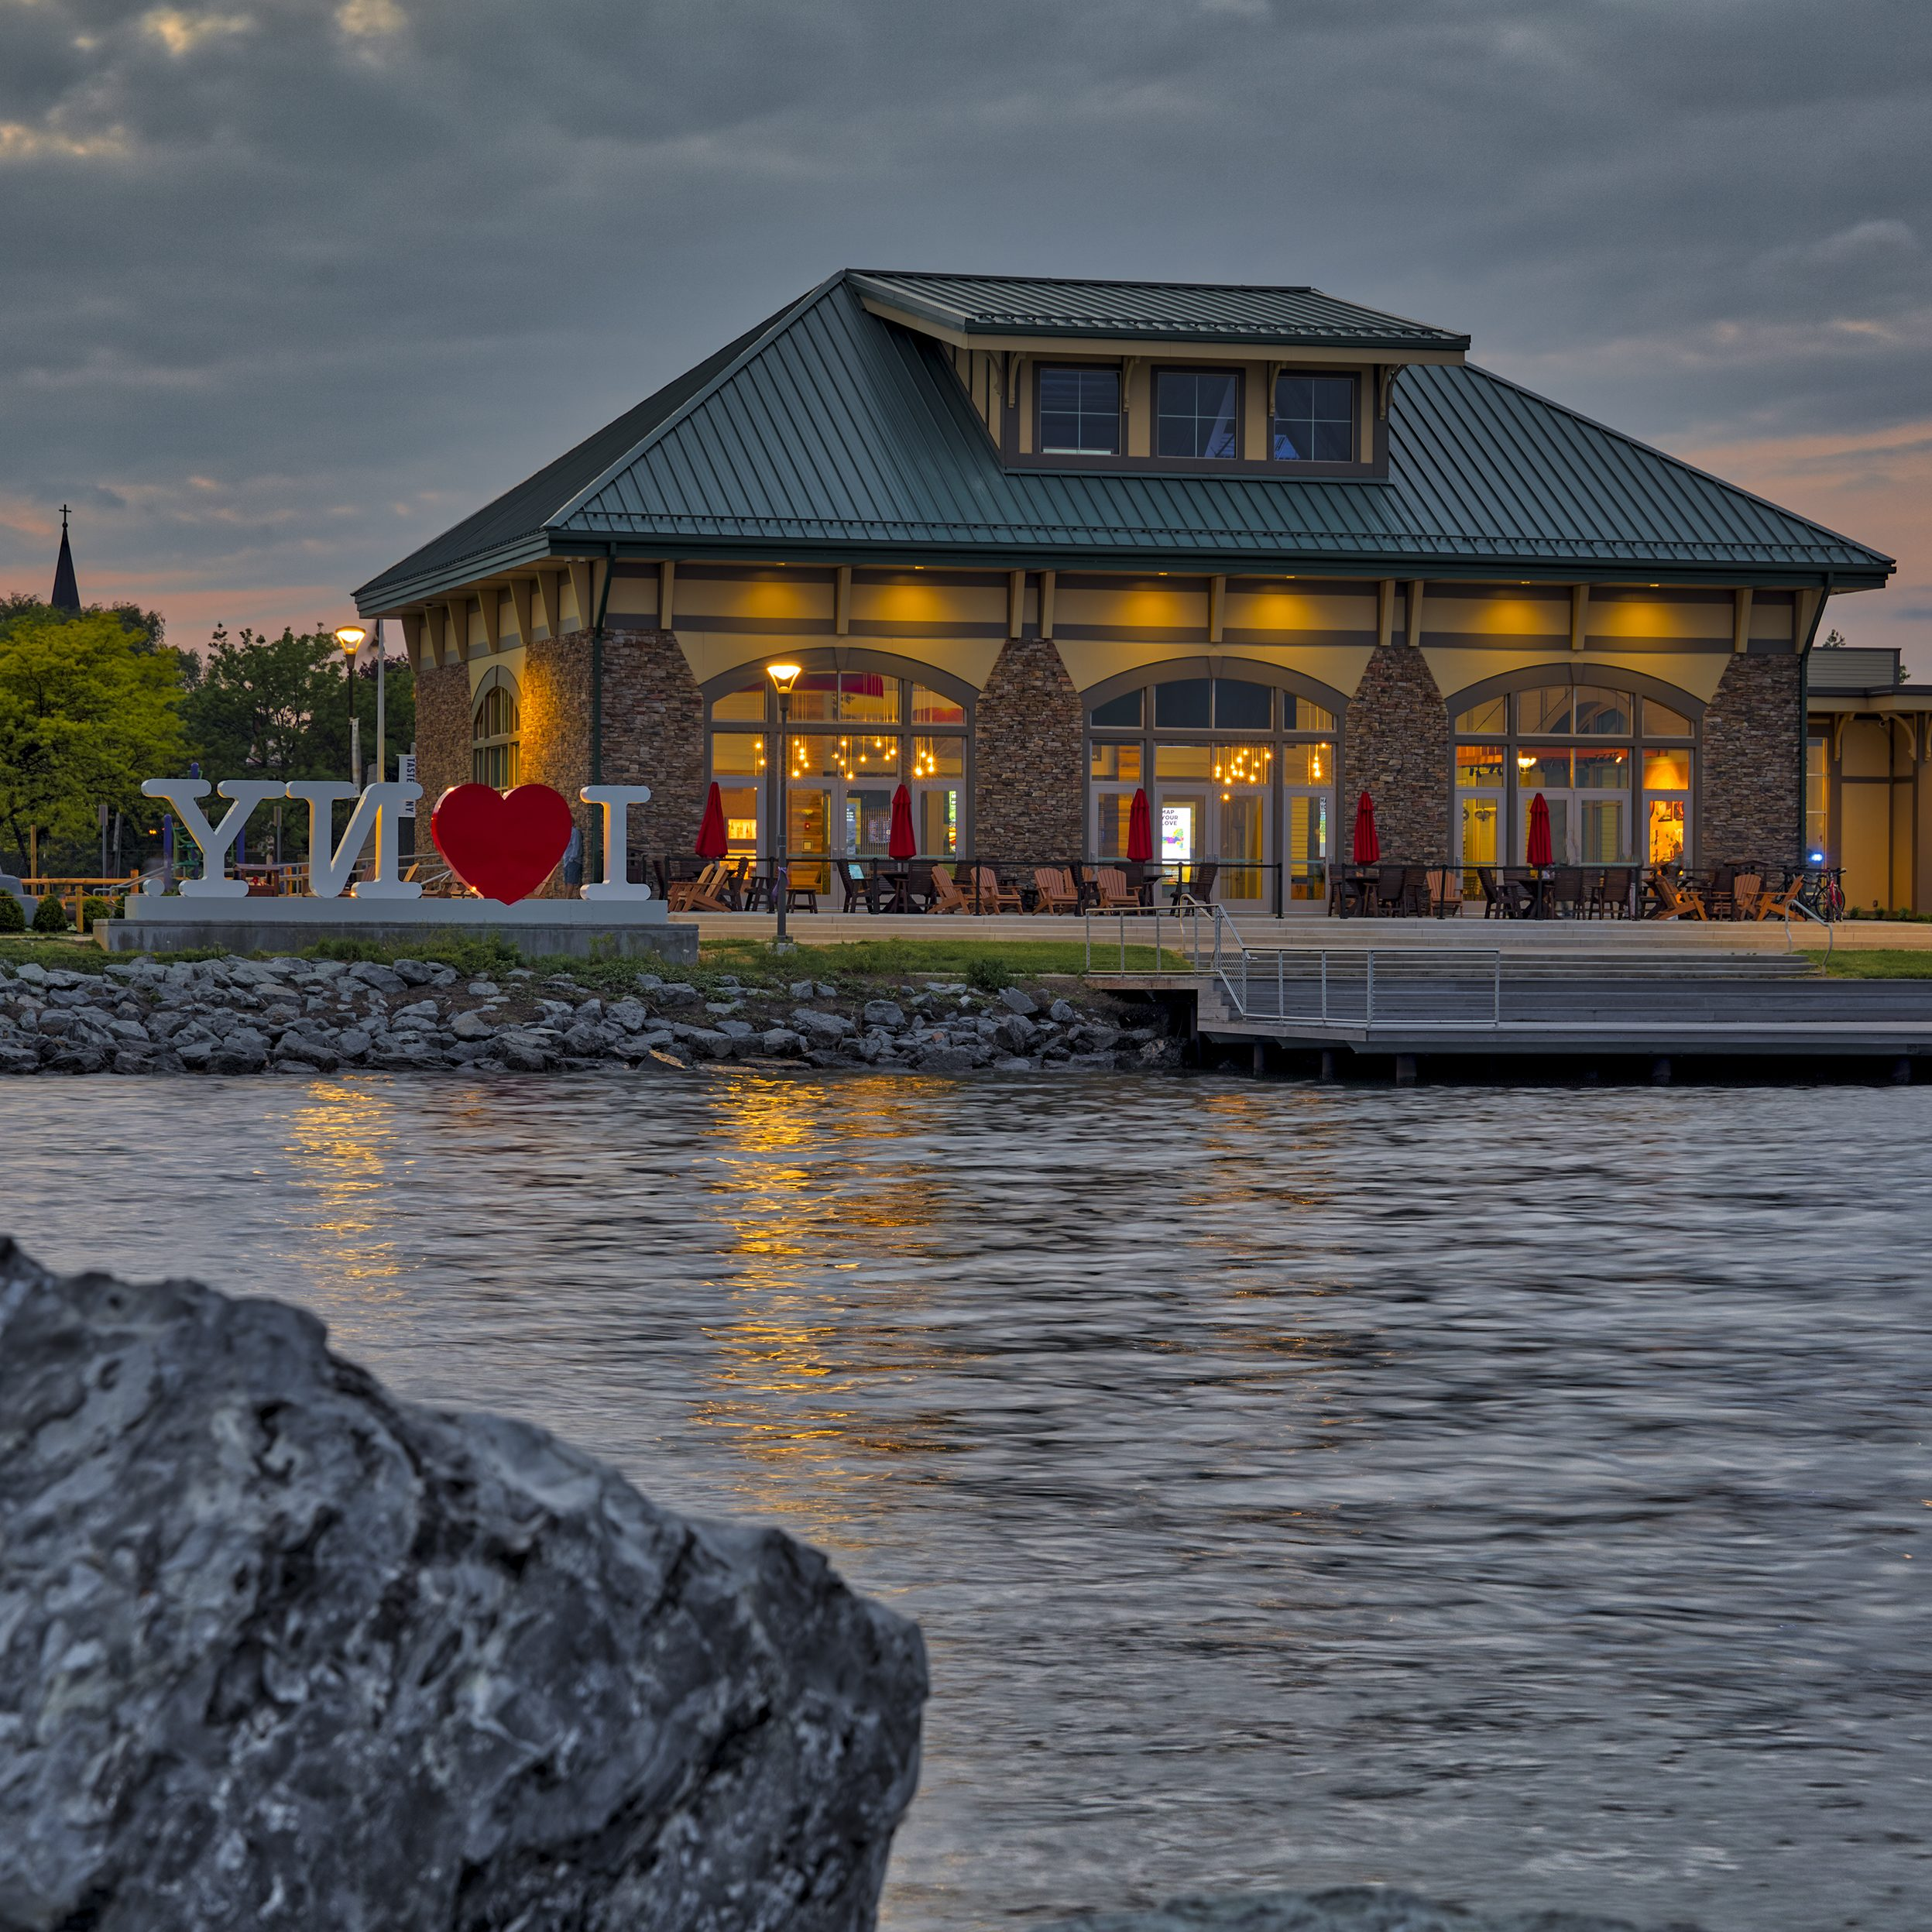 Finger Lakes Welcome Center in Geneva New York, photo credit: Kevin Colton